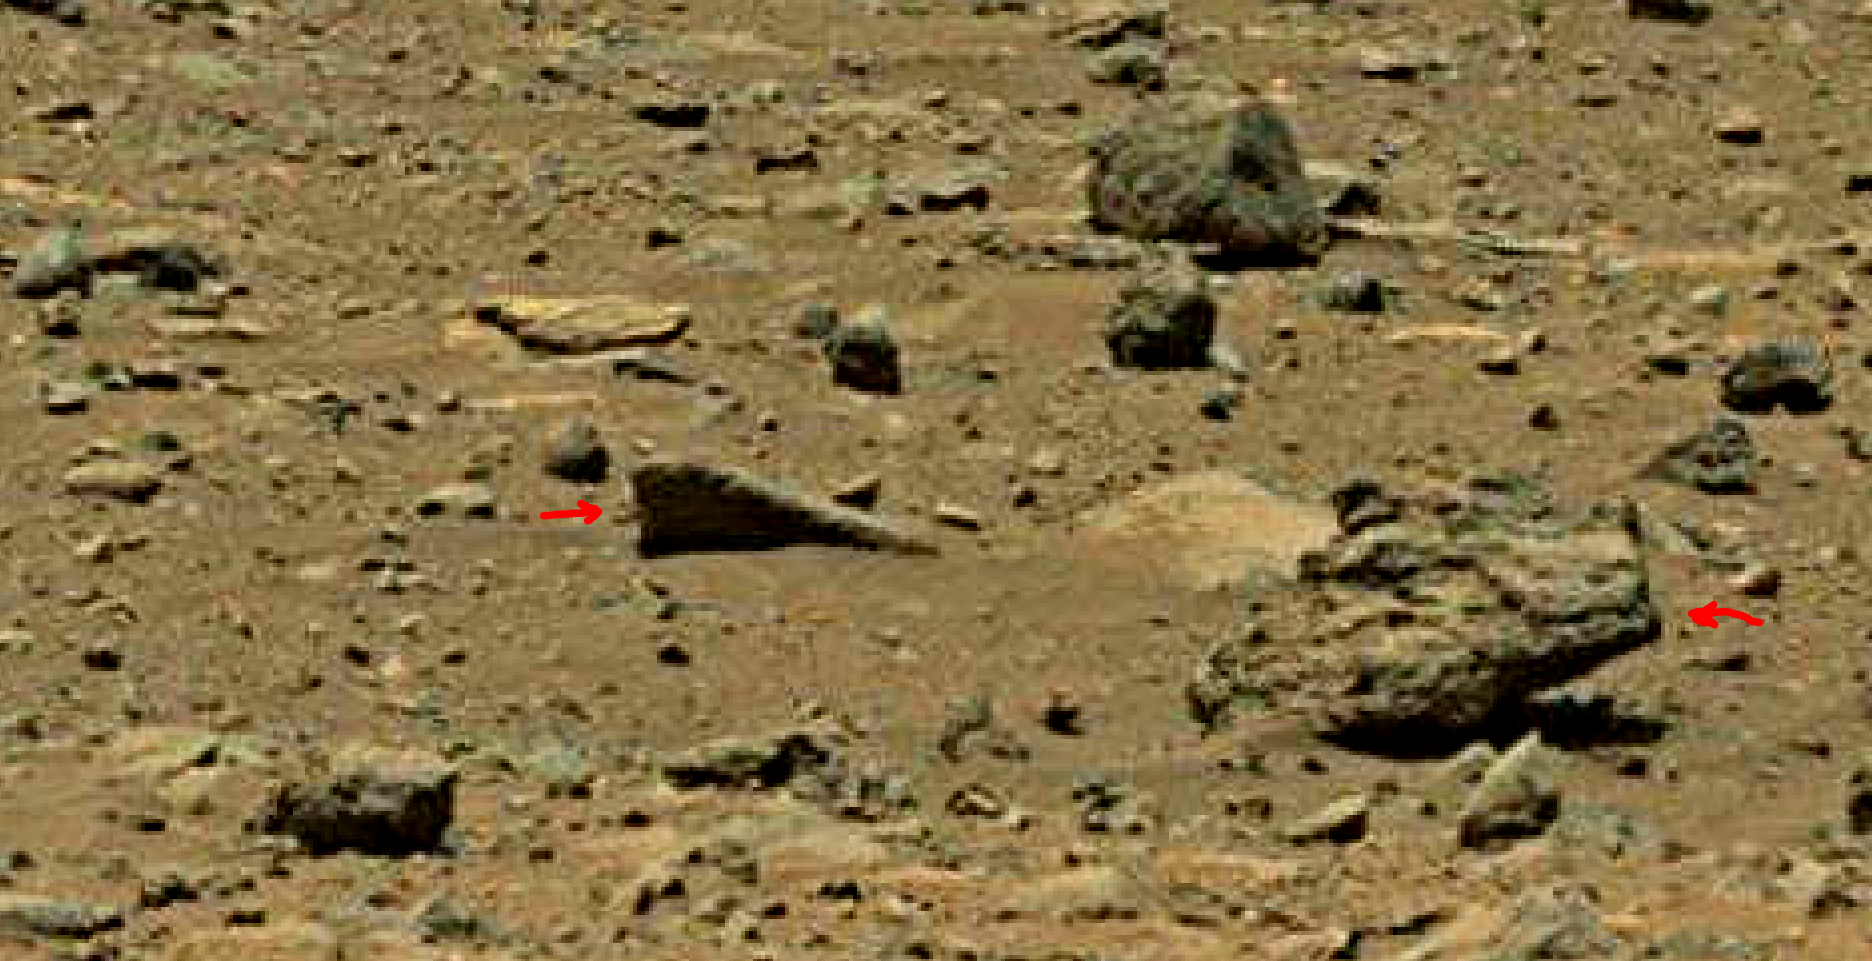 mars sol 1402 anomaly artifacts 1 was life on mars